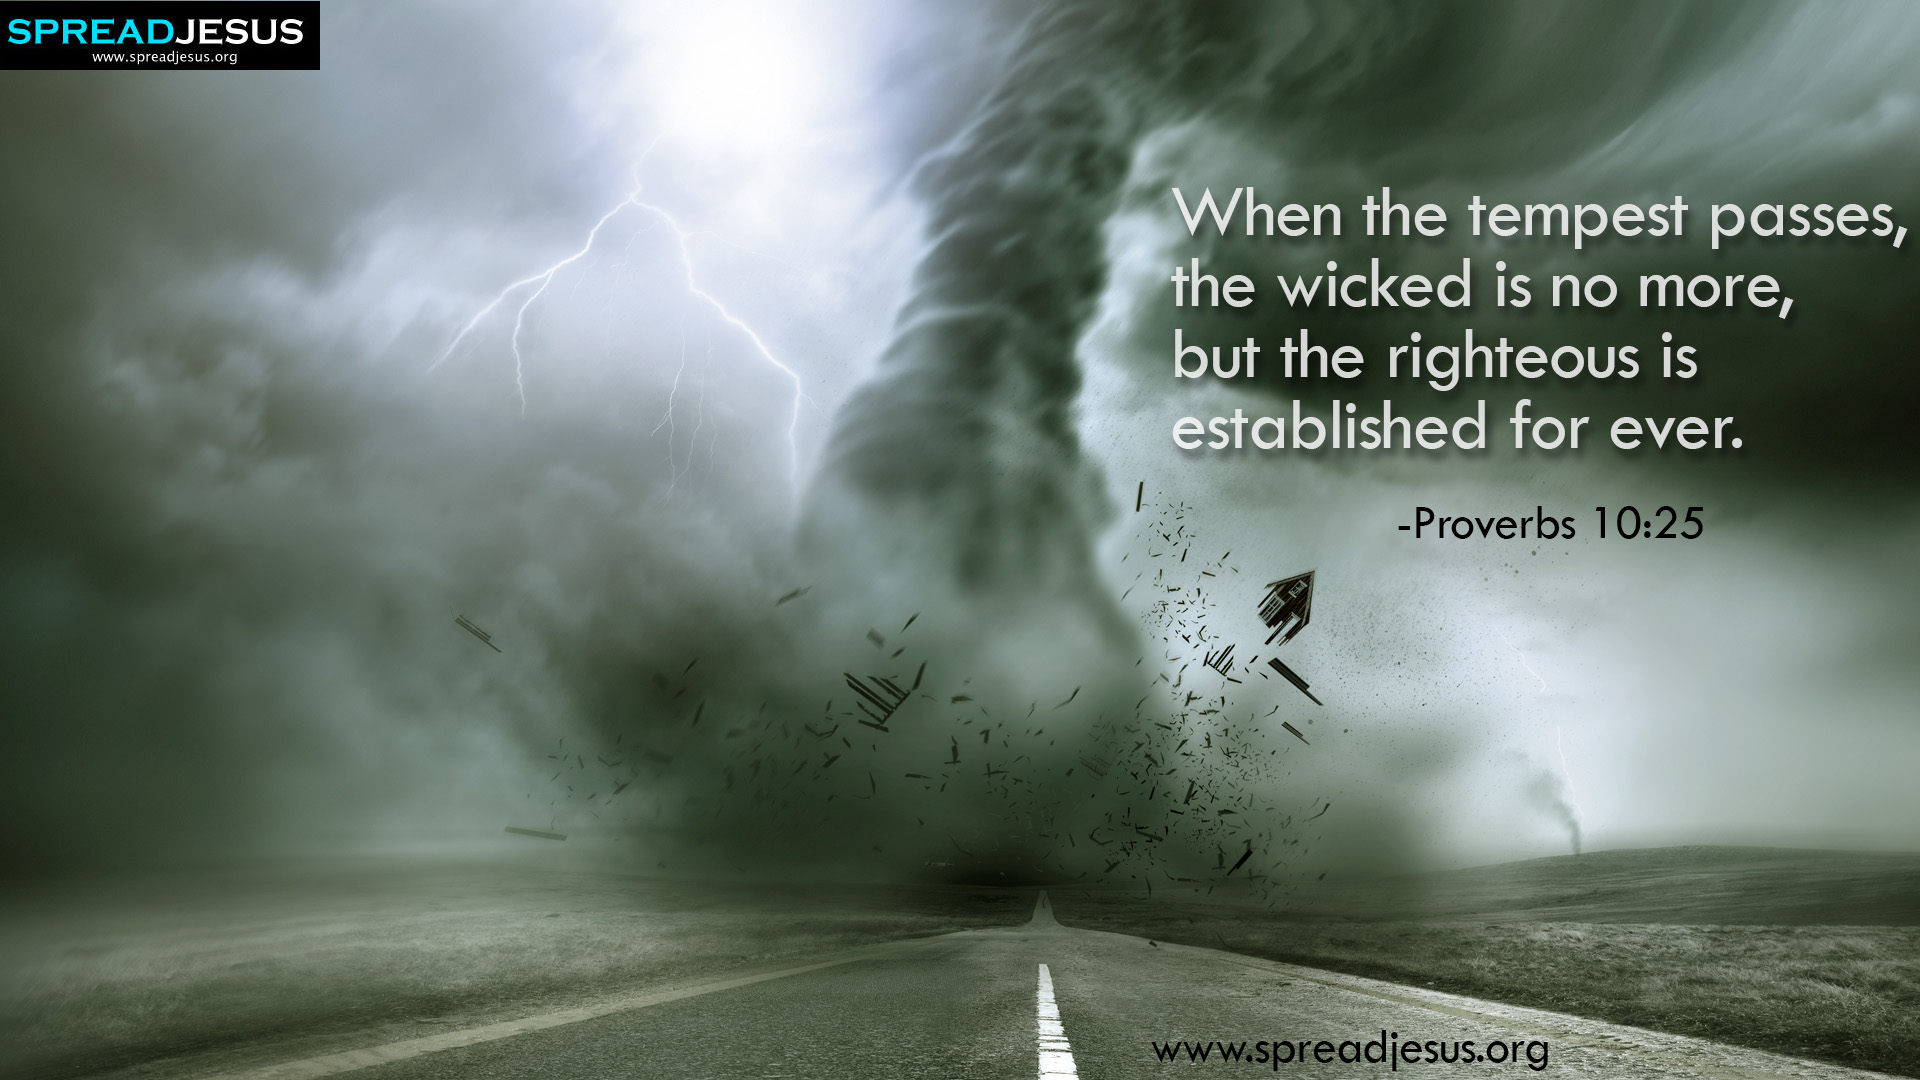 proverbs 10 25 bible quotes hd wallpapers download when